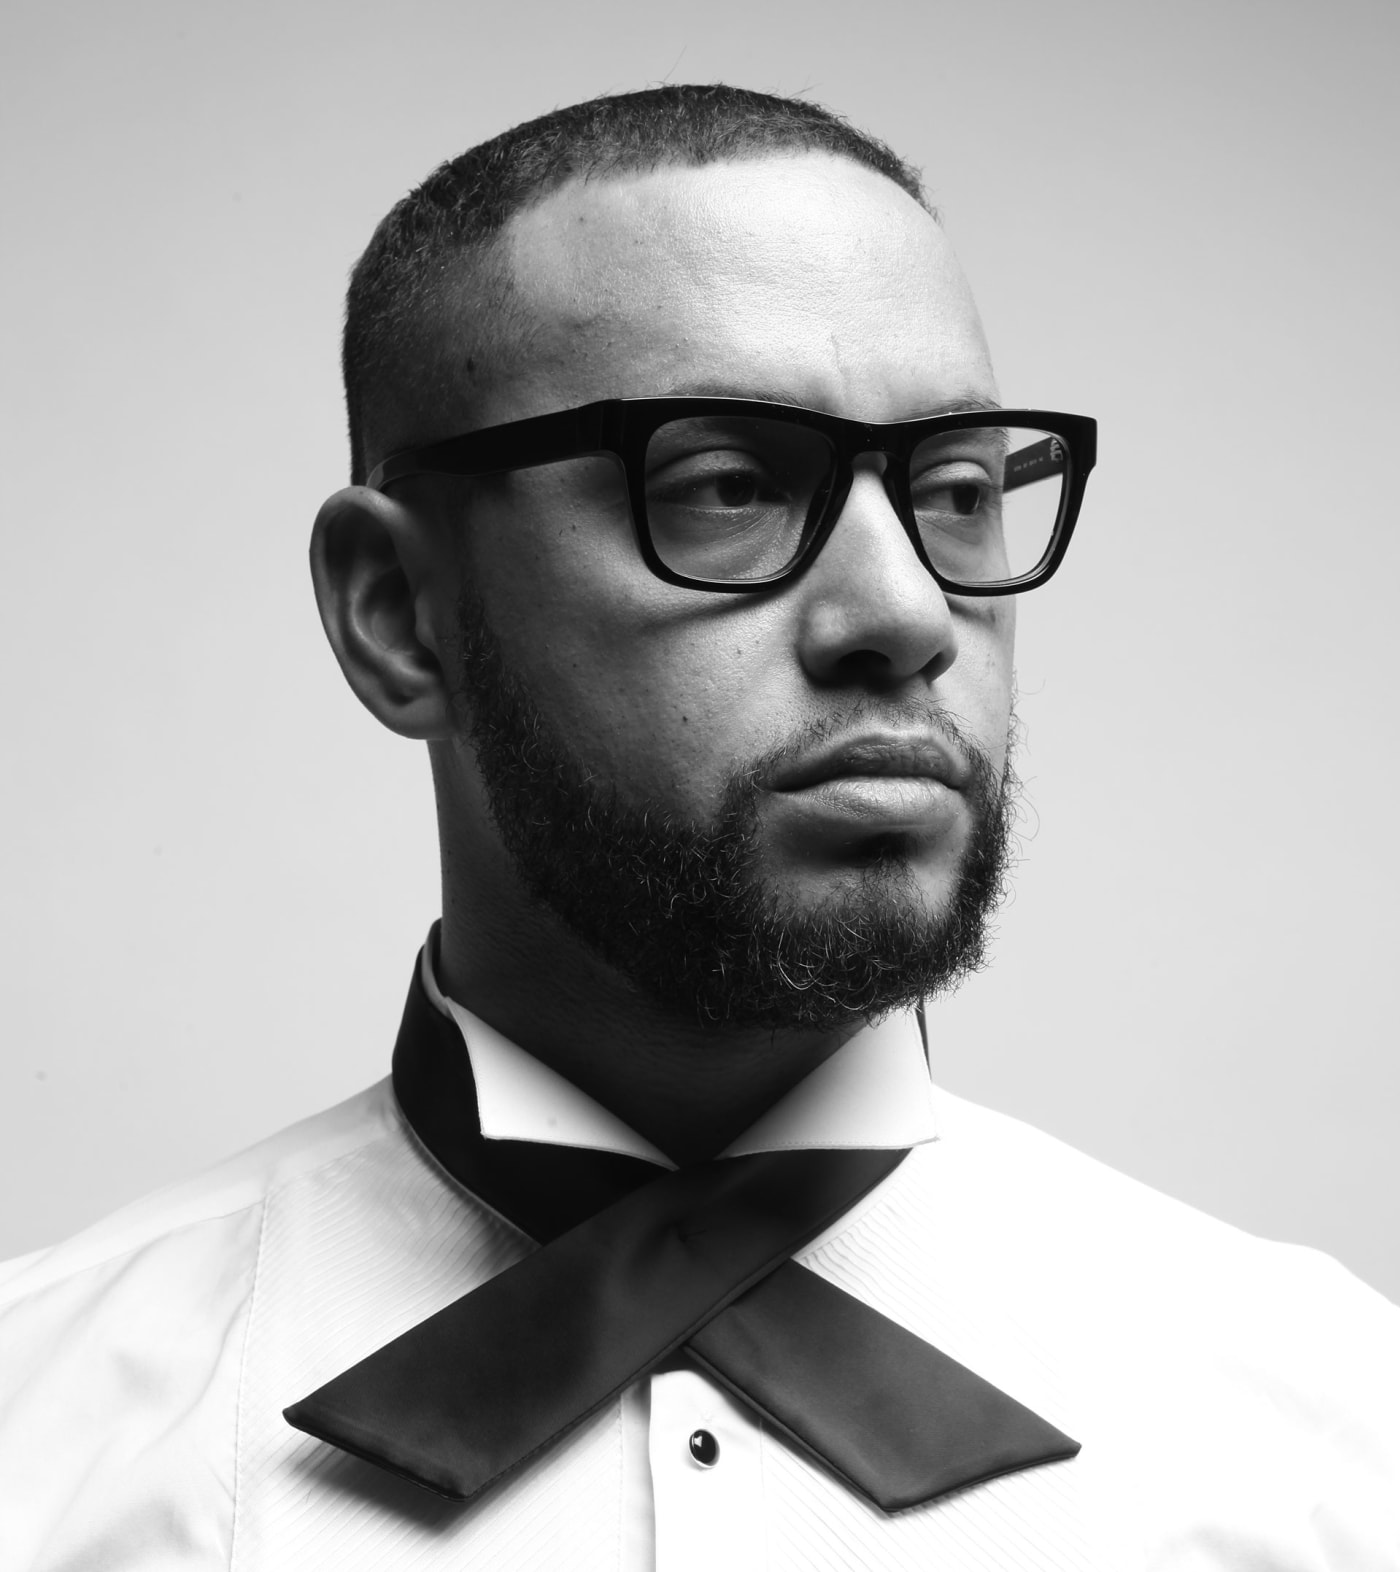 Director X poses in a white shirt and x shaped tie